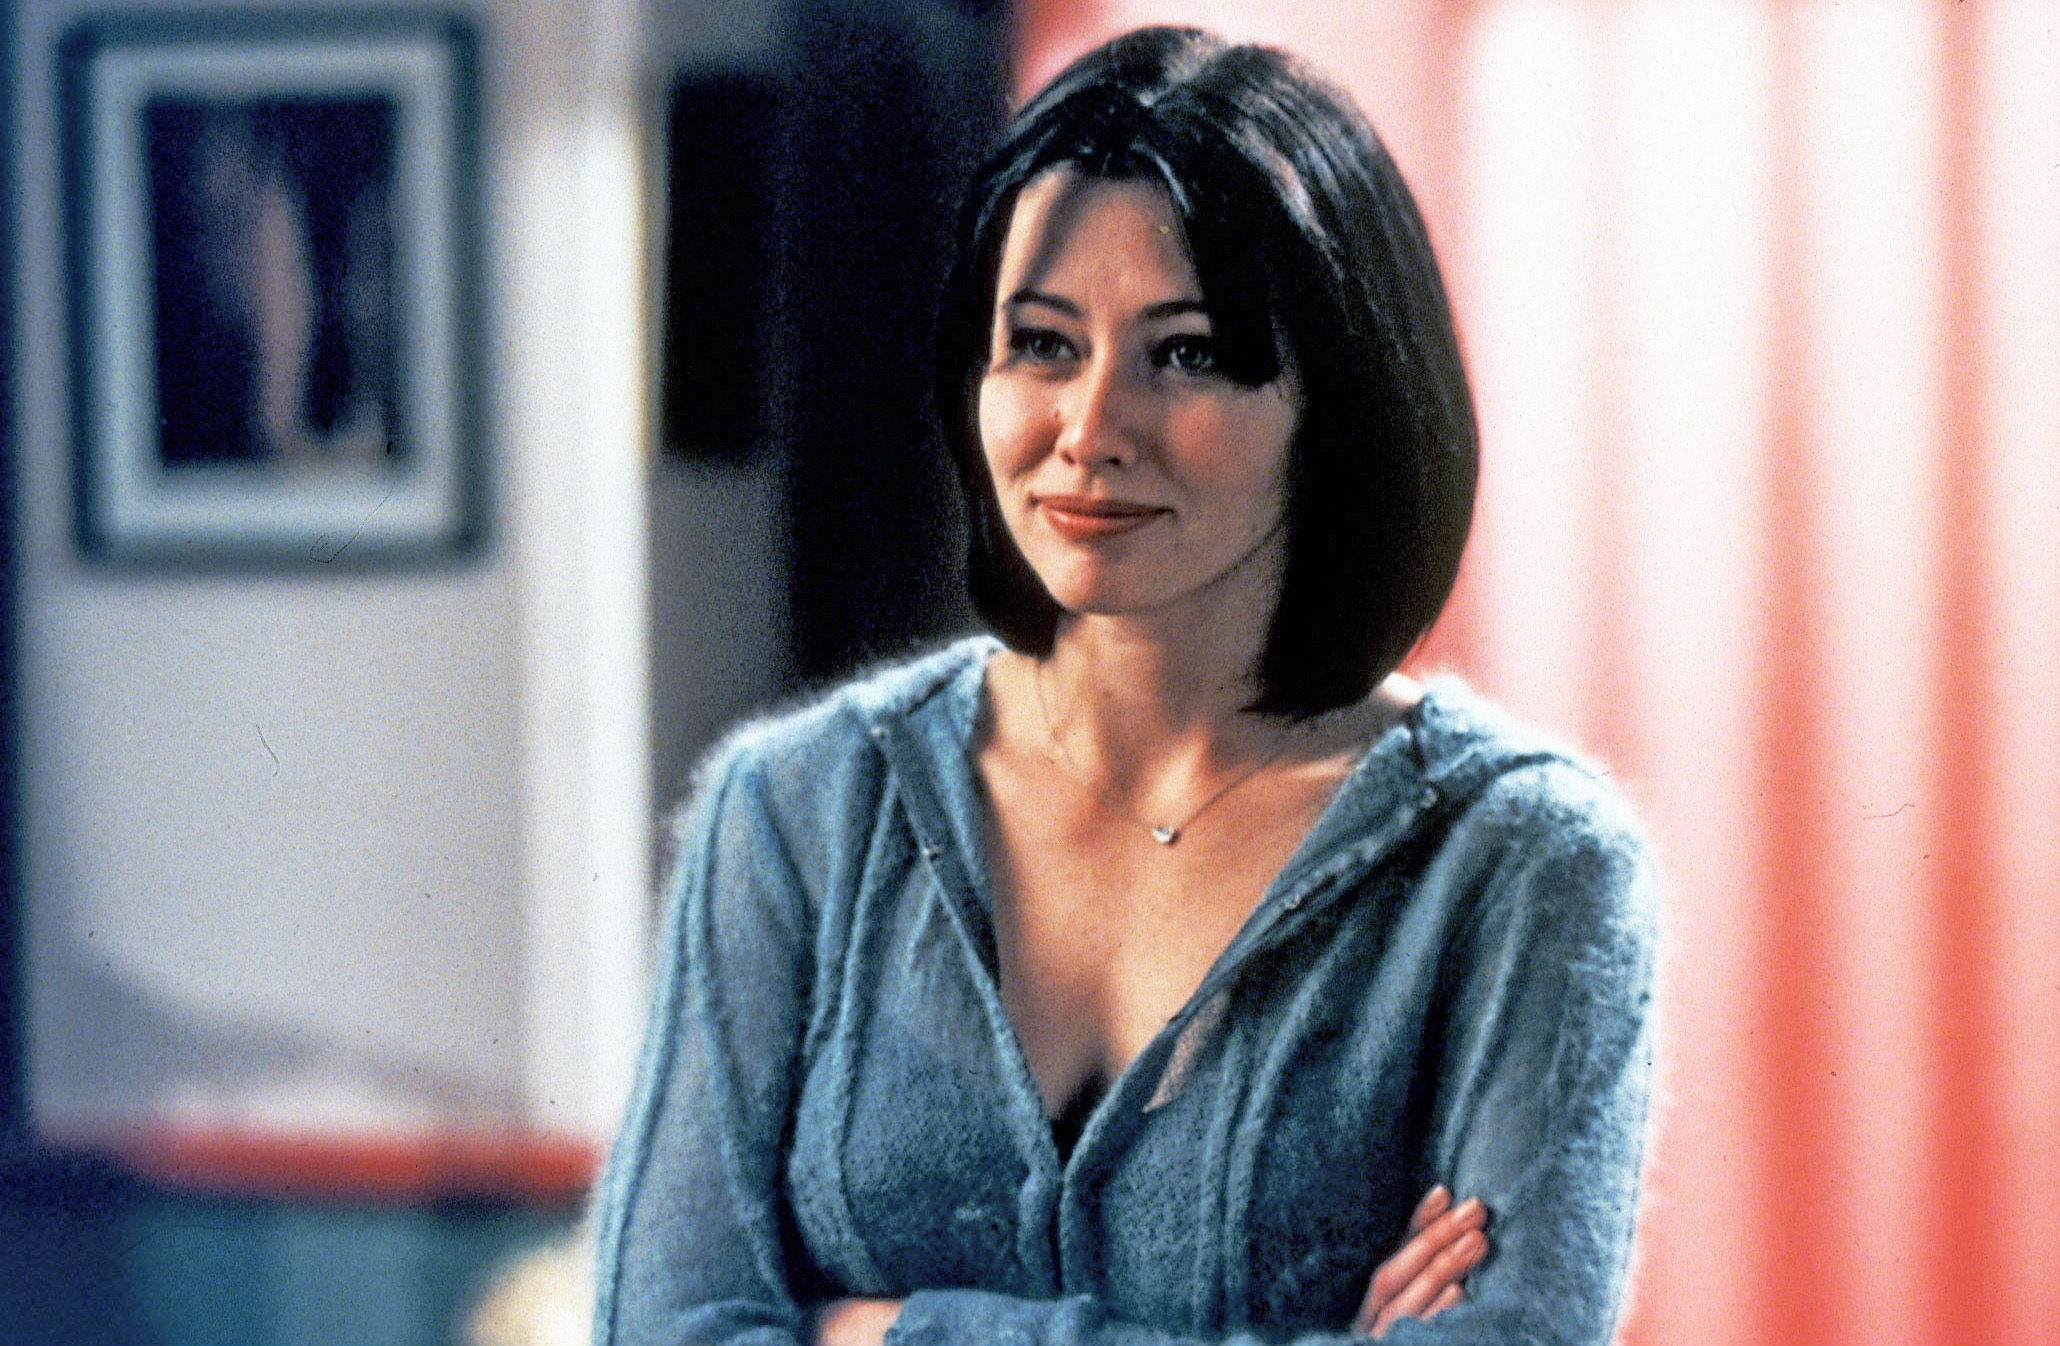 Drunk Girls Hd Wallpaper Charmed 2013 Update Photo Gallery Shannen Doherty As